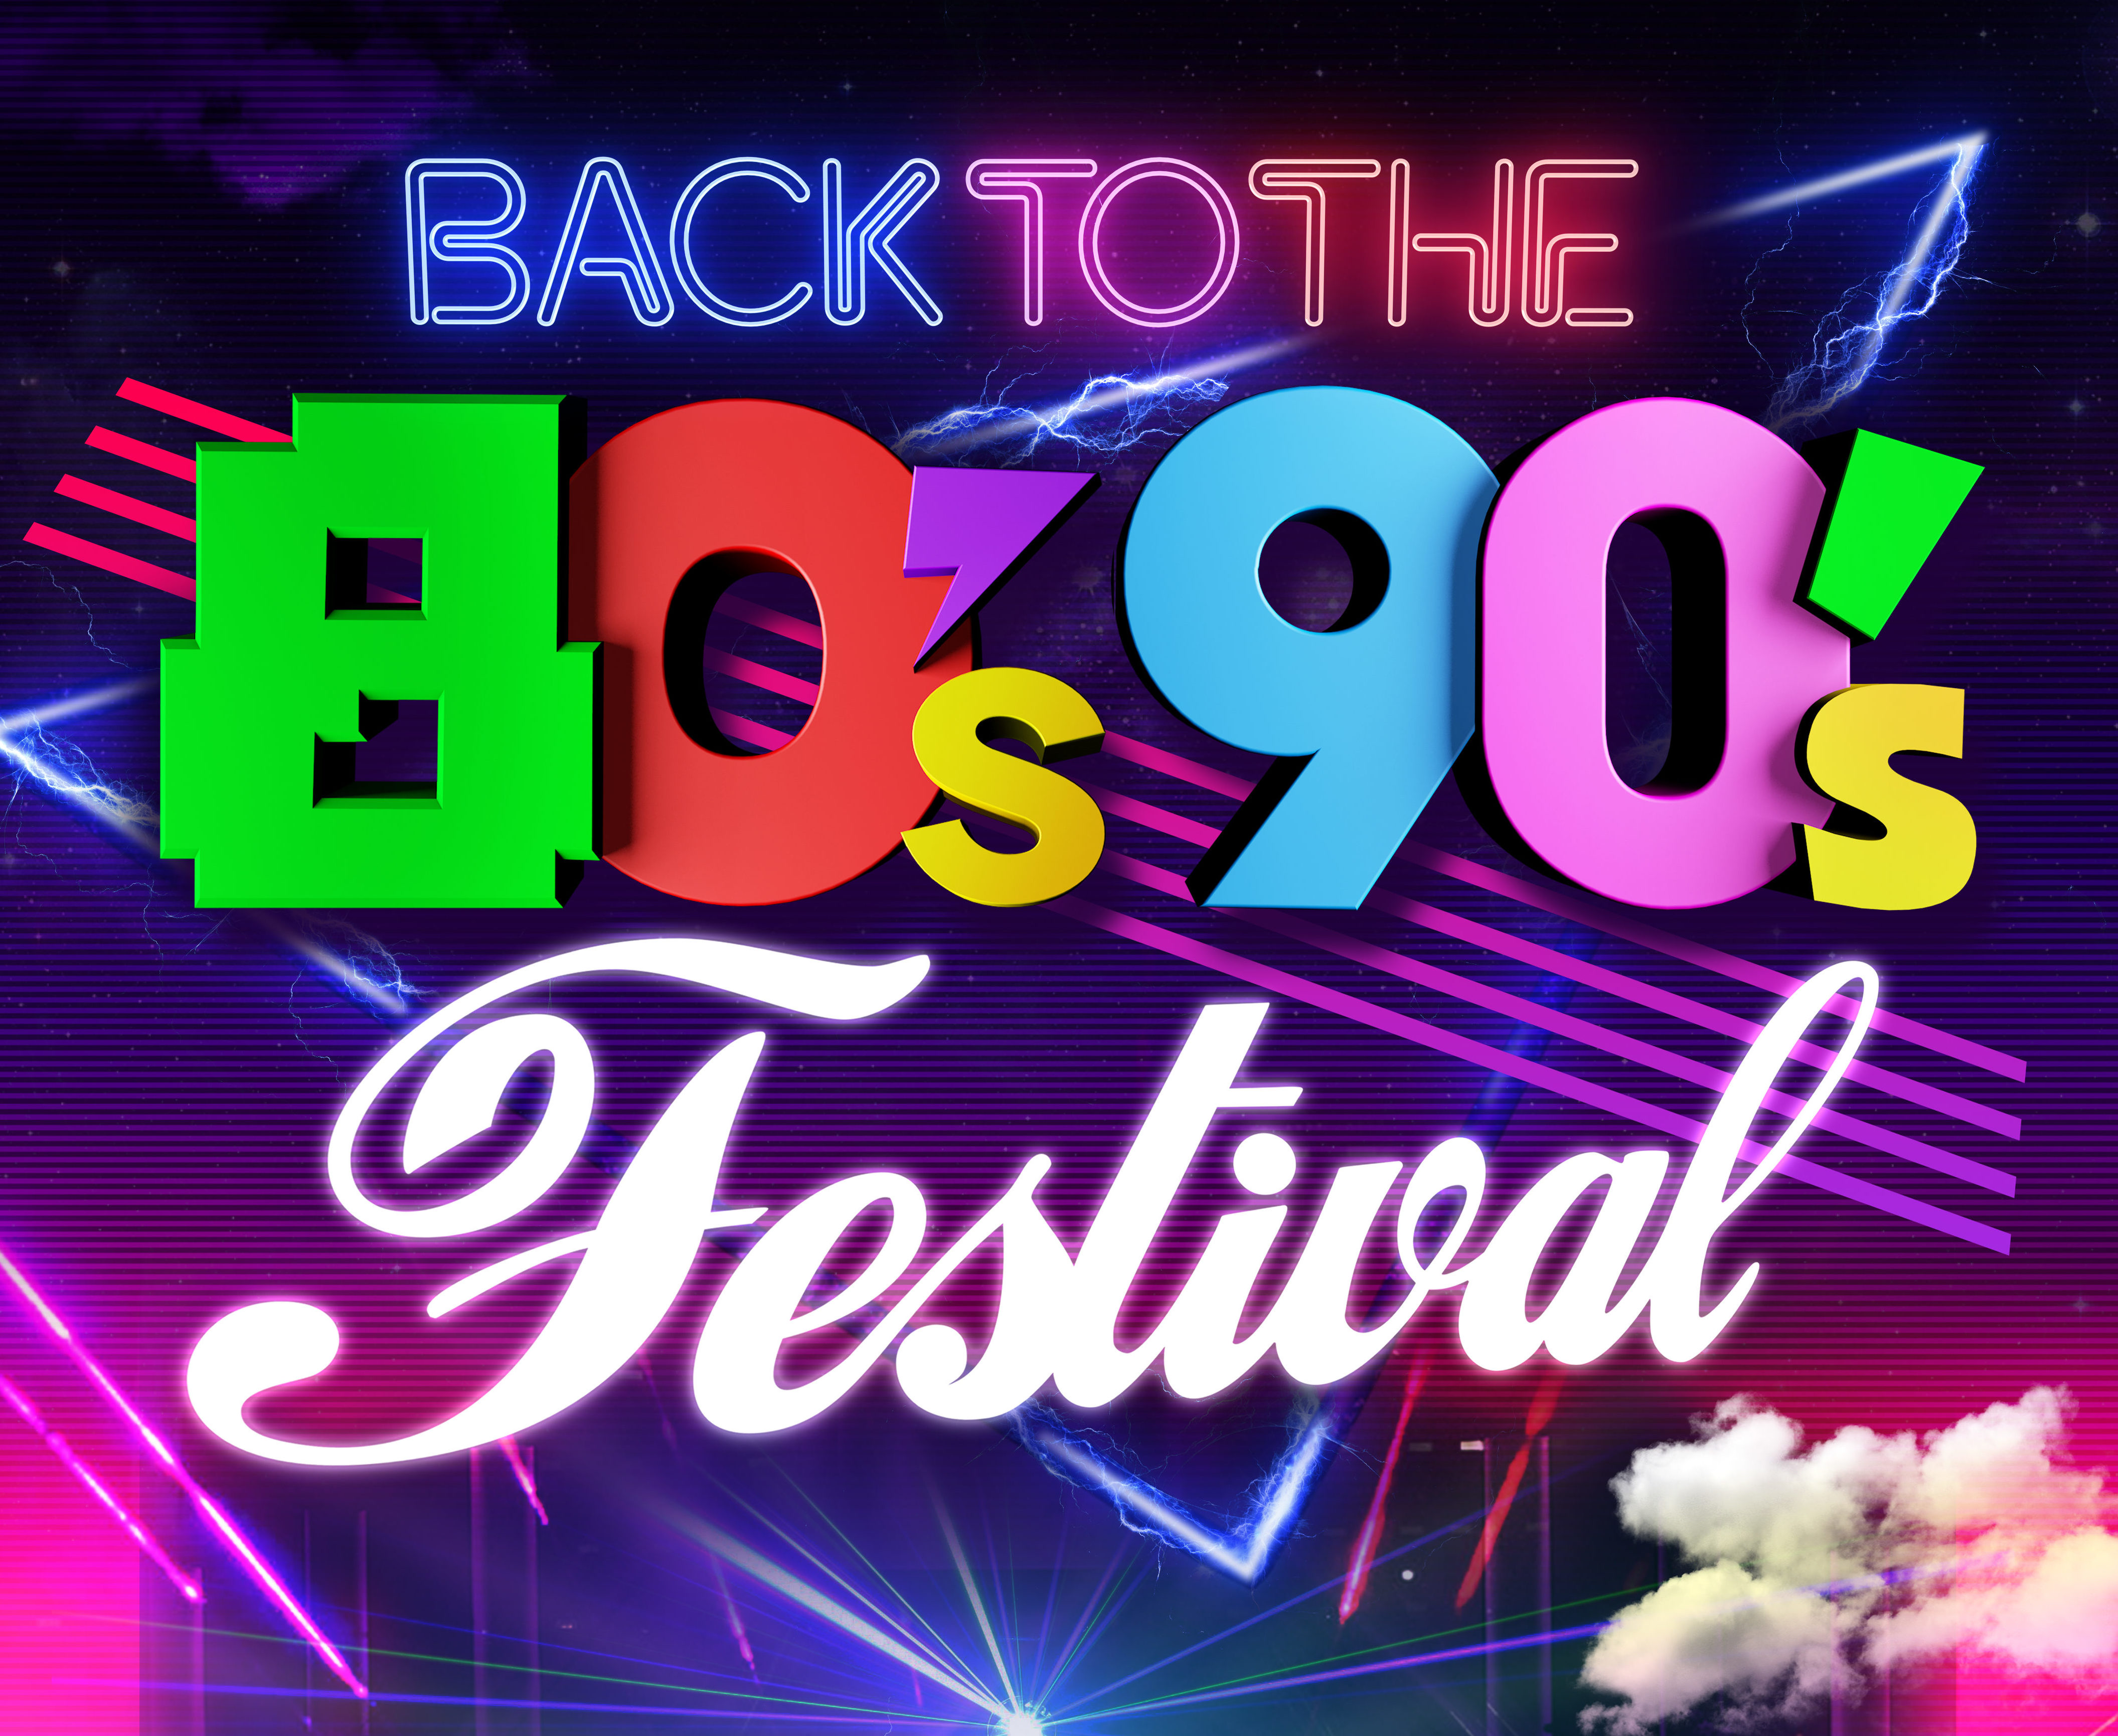 Back to the 80's & 90's Festival 2019 - James Dean Events